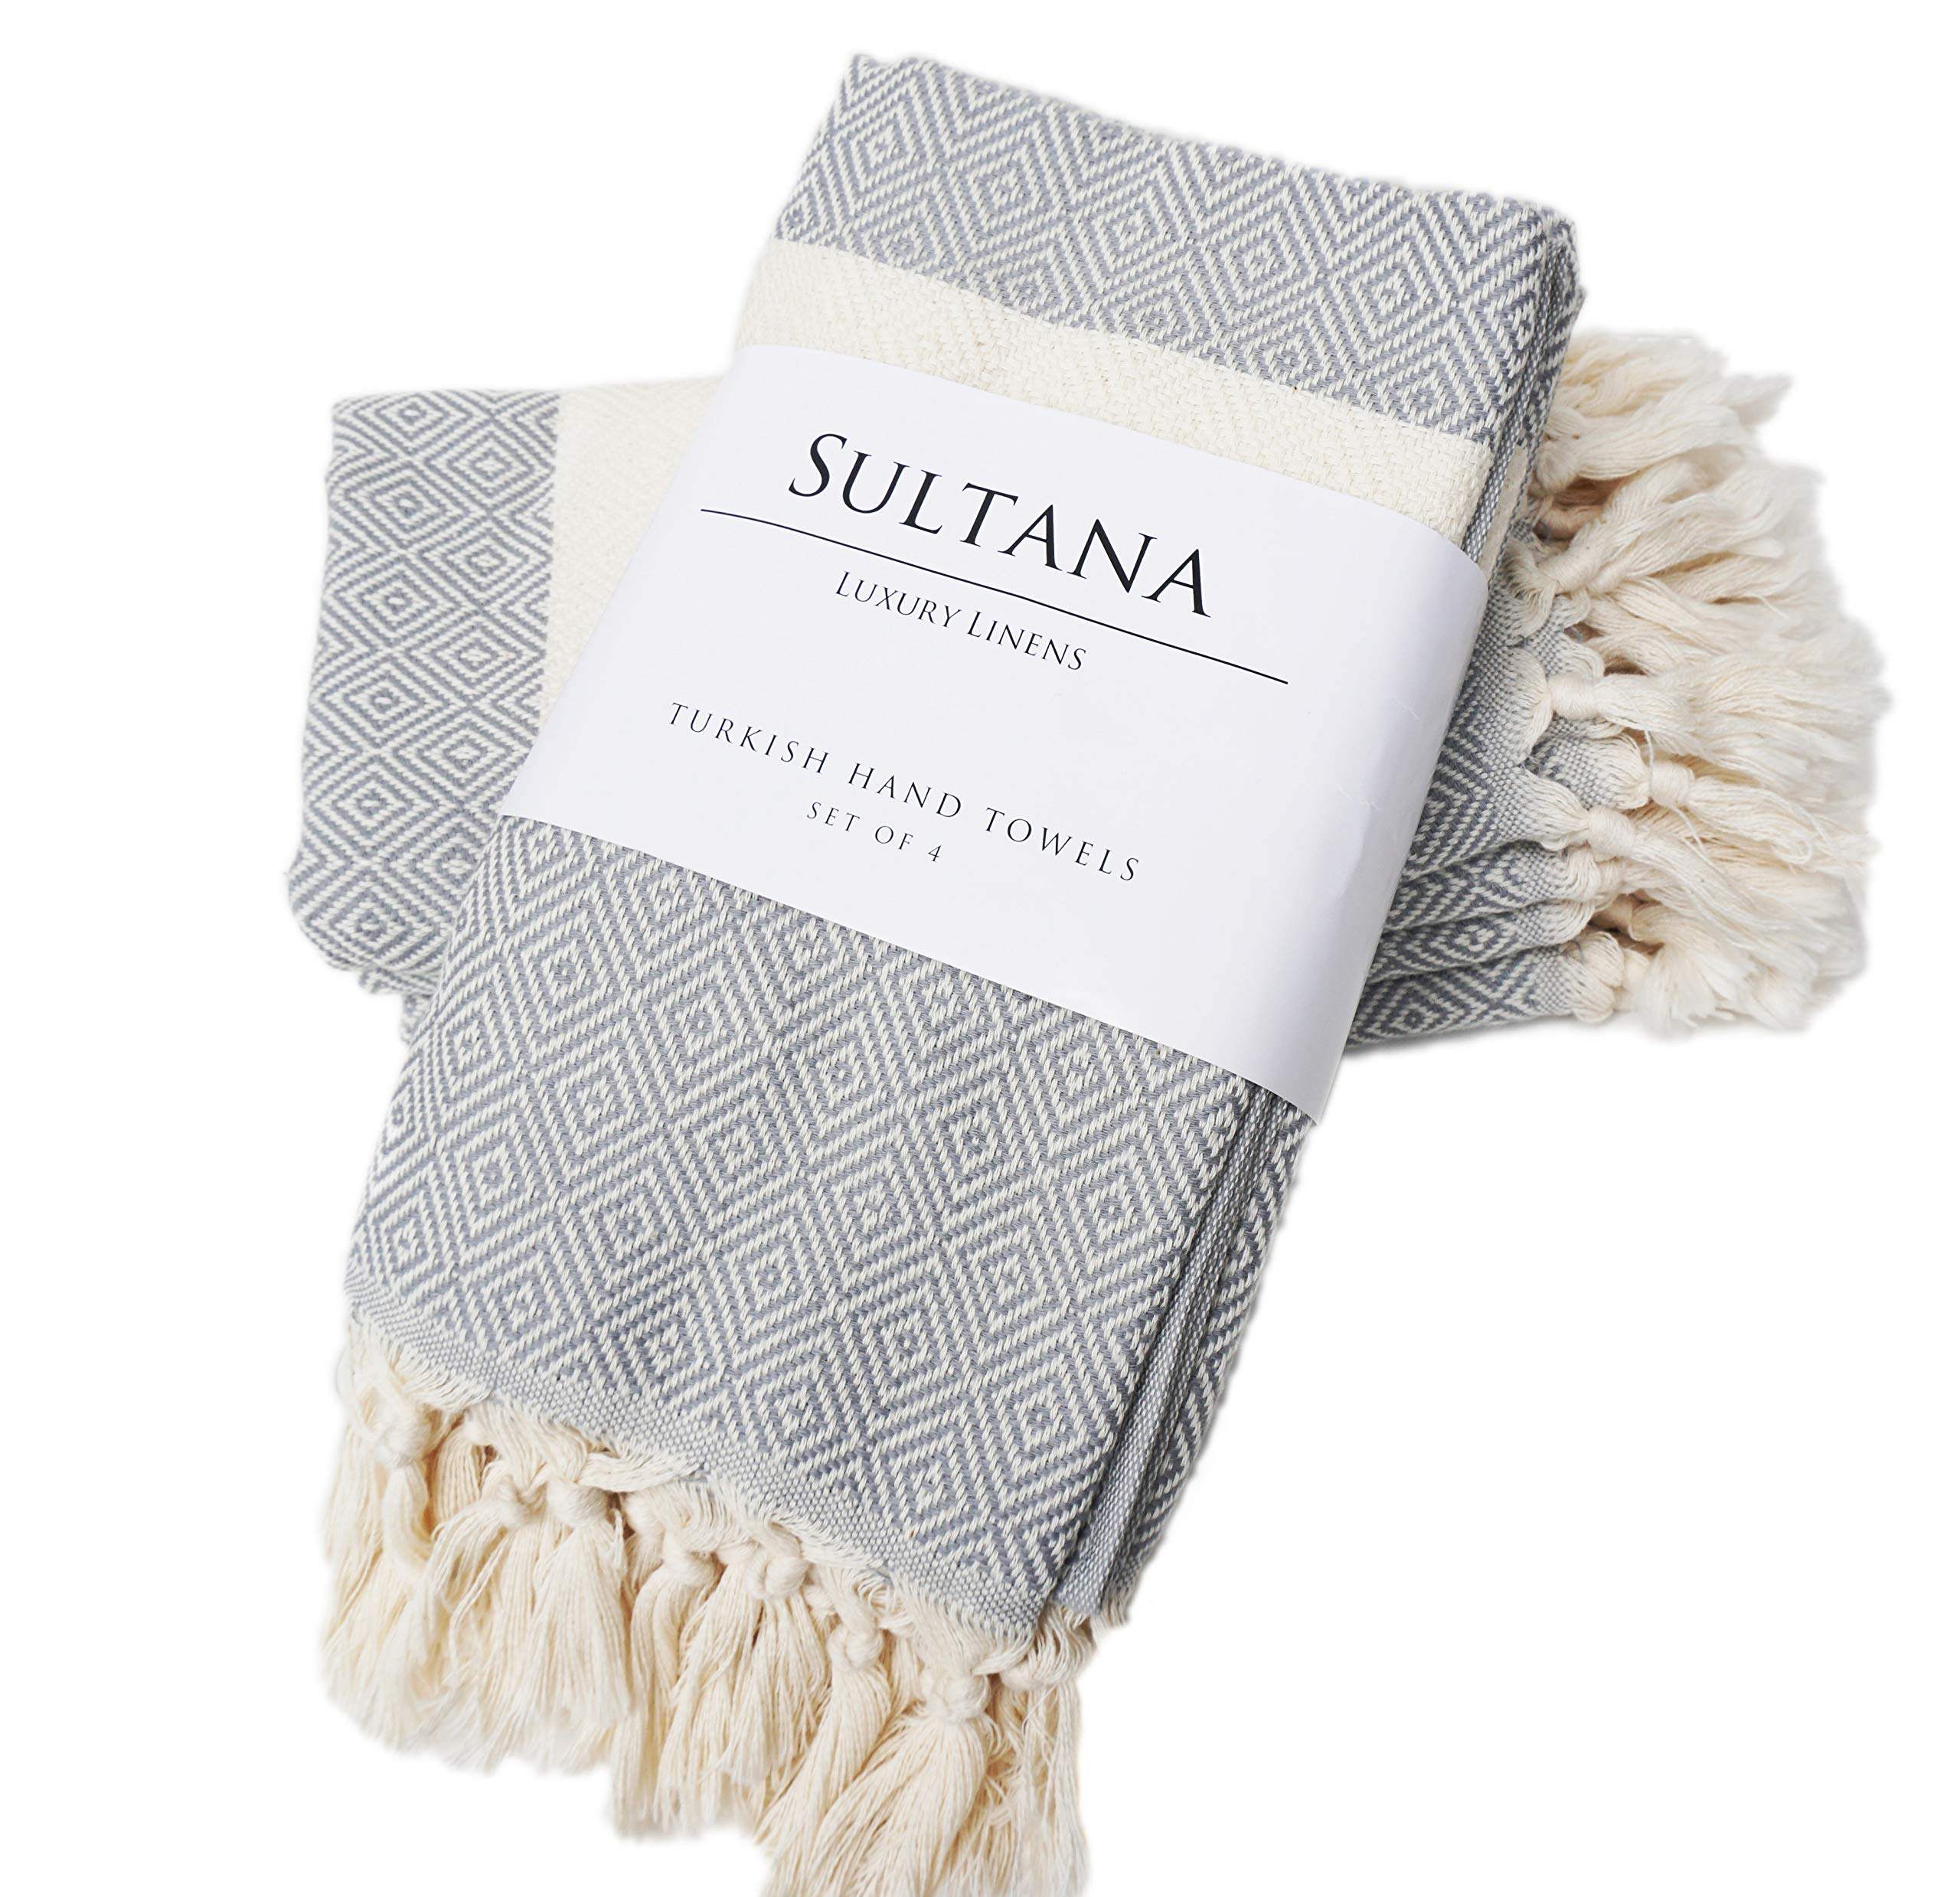 Sultana Luxury Linens - Turkish Hand Towels (Set of 4) | 100% Cotton | Eco-Friendly | Quick Dry | Hand, Tea, Kitchen, Hair, Spa, Face, Bath, Dish | Decorative Bathroom Towel | Peshkirs (Grey)